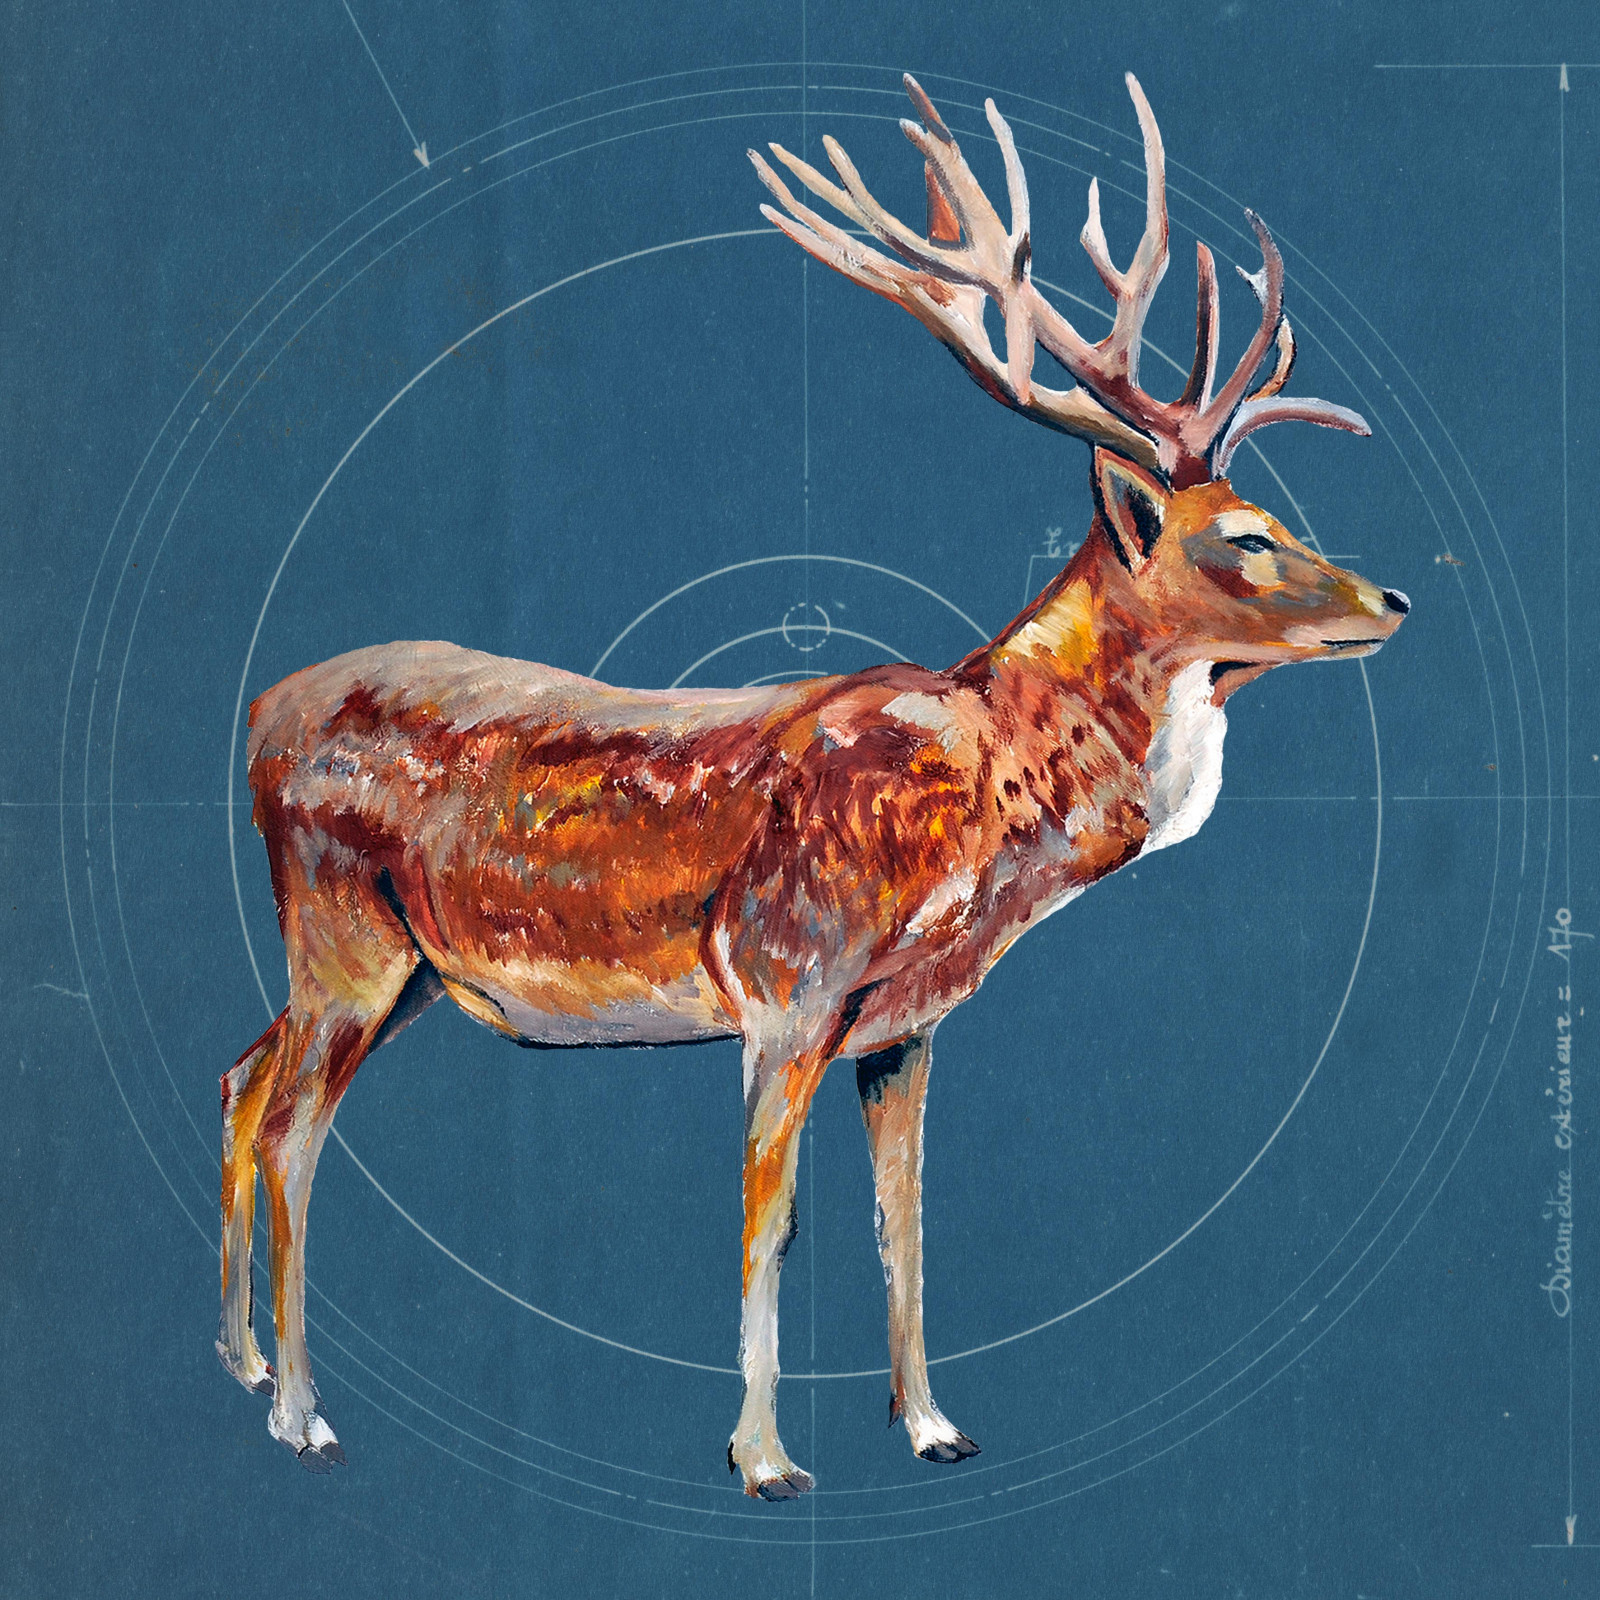 Stag on blueprint ltd edition print degreeart the original stag on blueprint ltd edition print degreeart the original online art gallery malvernweather Image collections